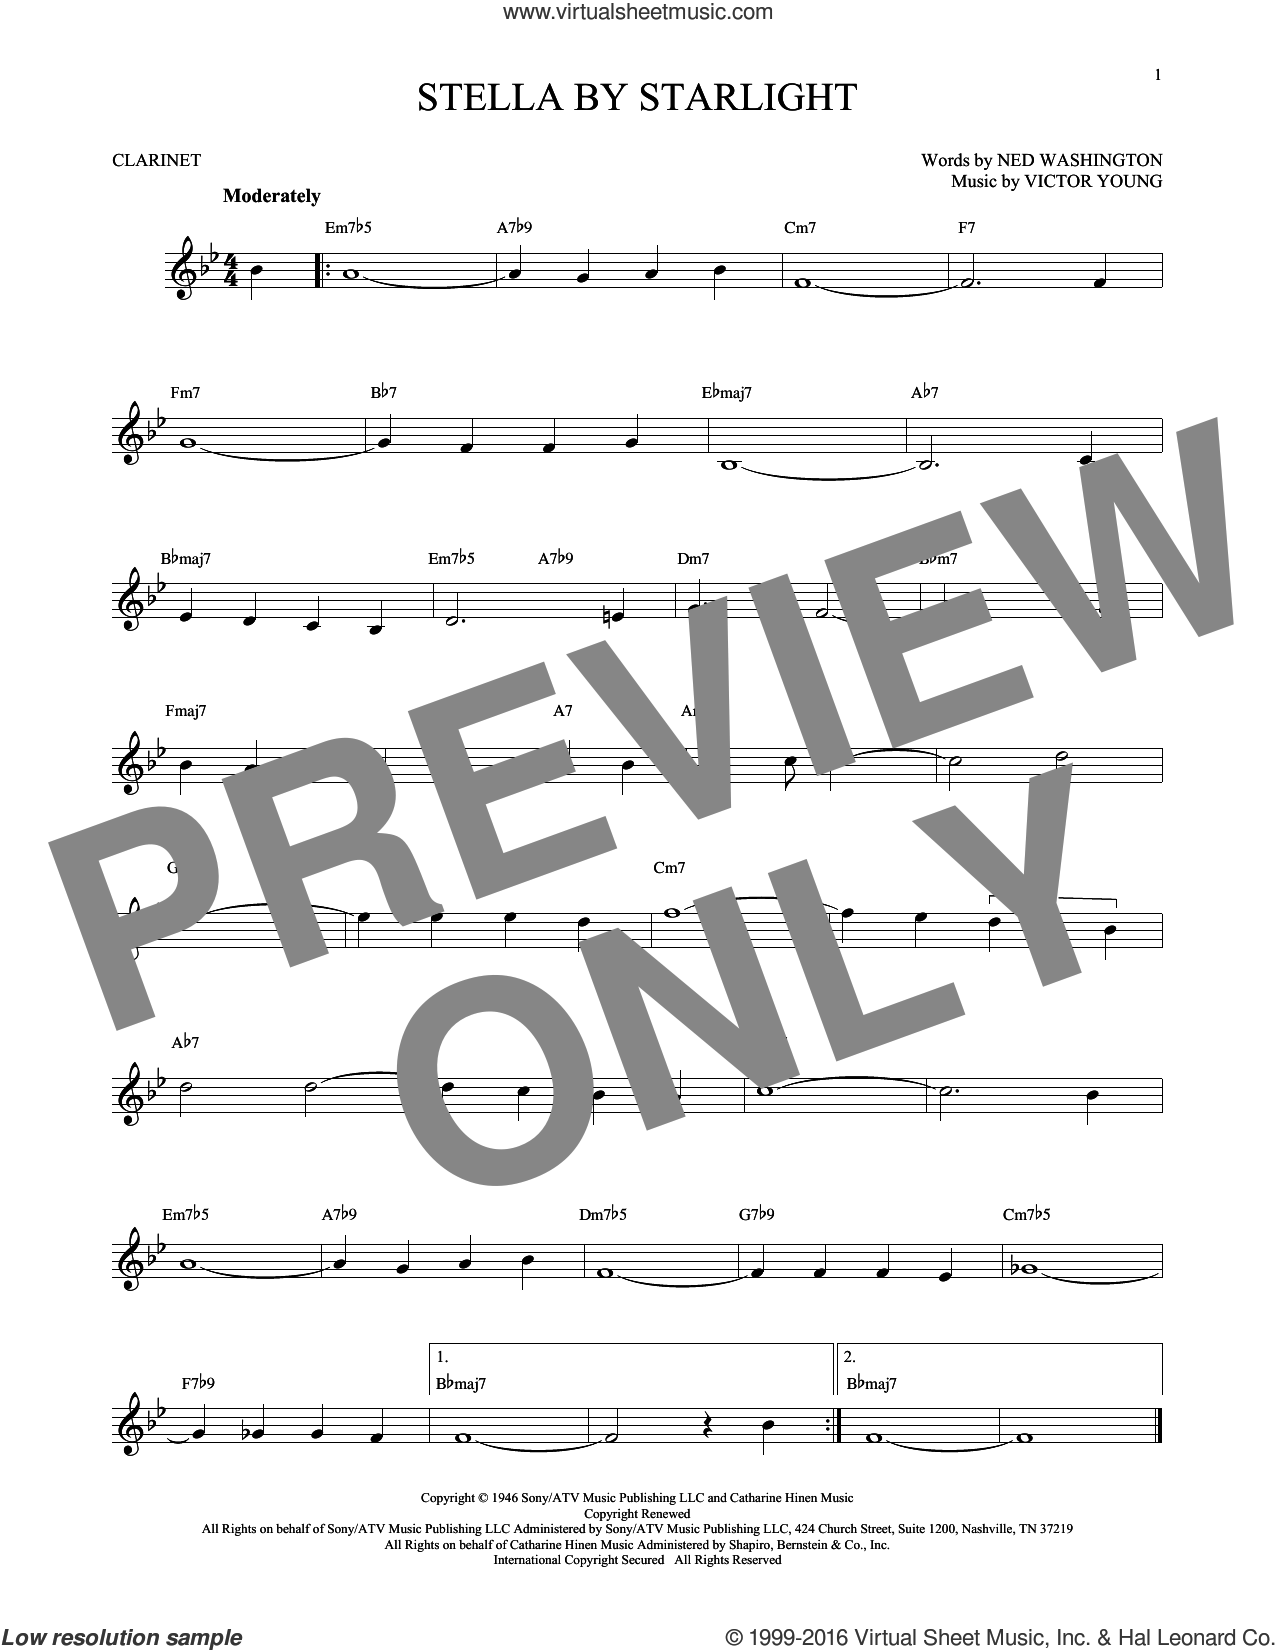 Stella By Starlight sheet music for clarinet solo by Ned Washington, Ray Charles and Victor Young, intermediate skill level